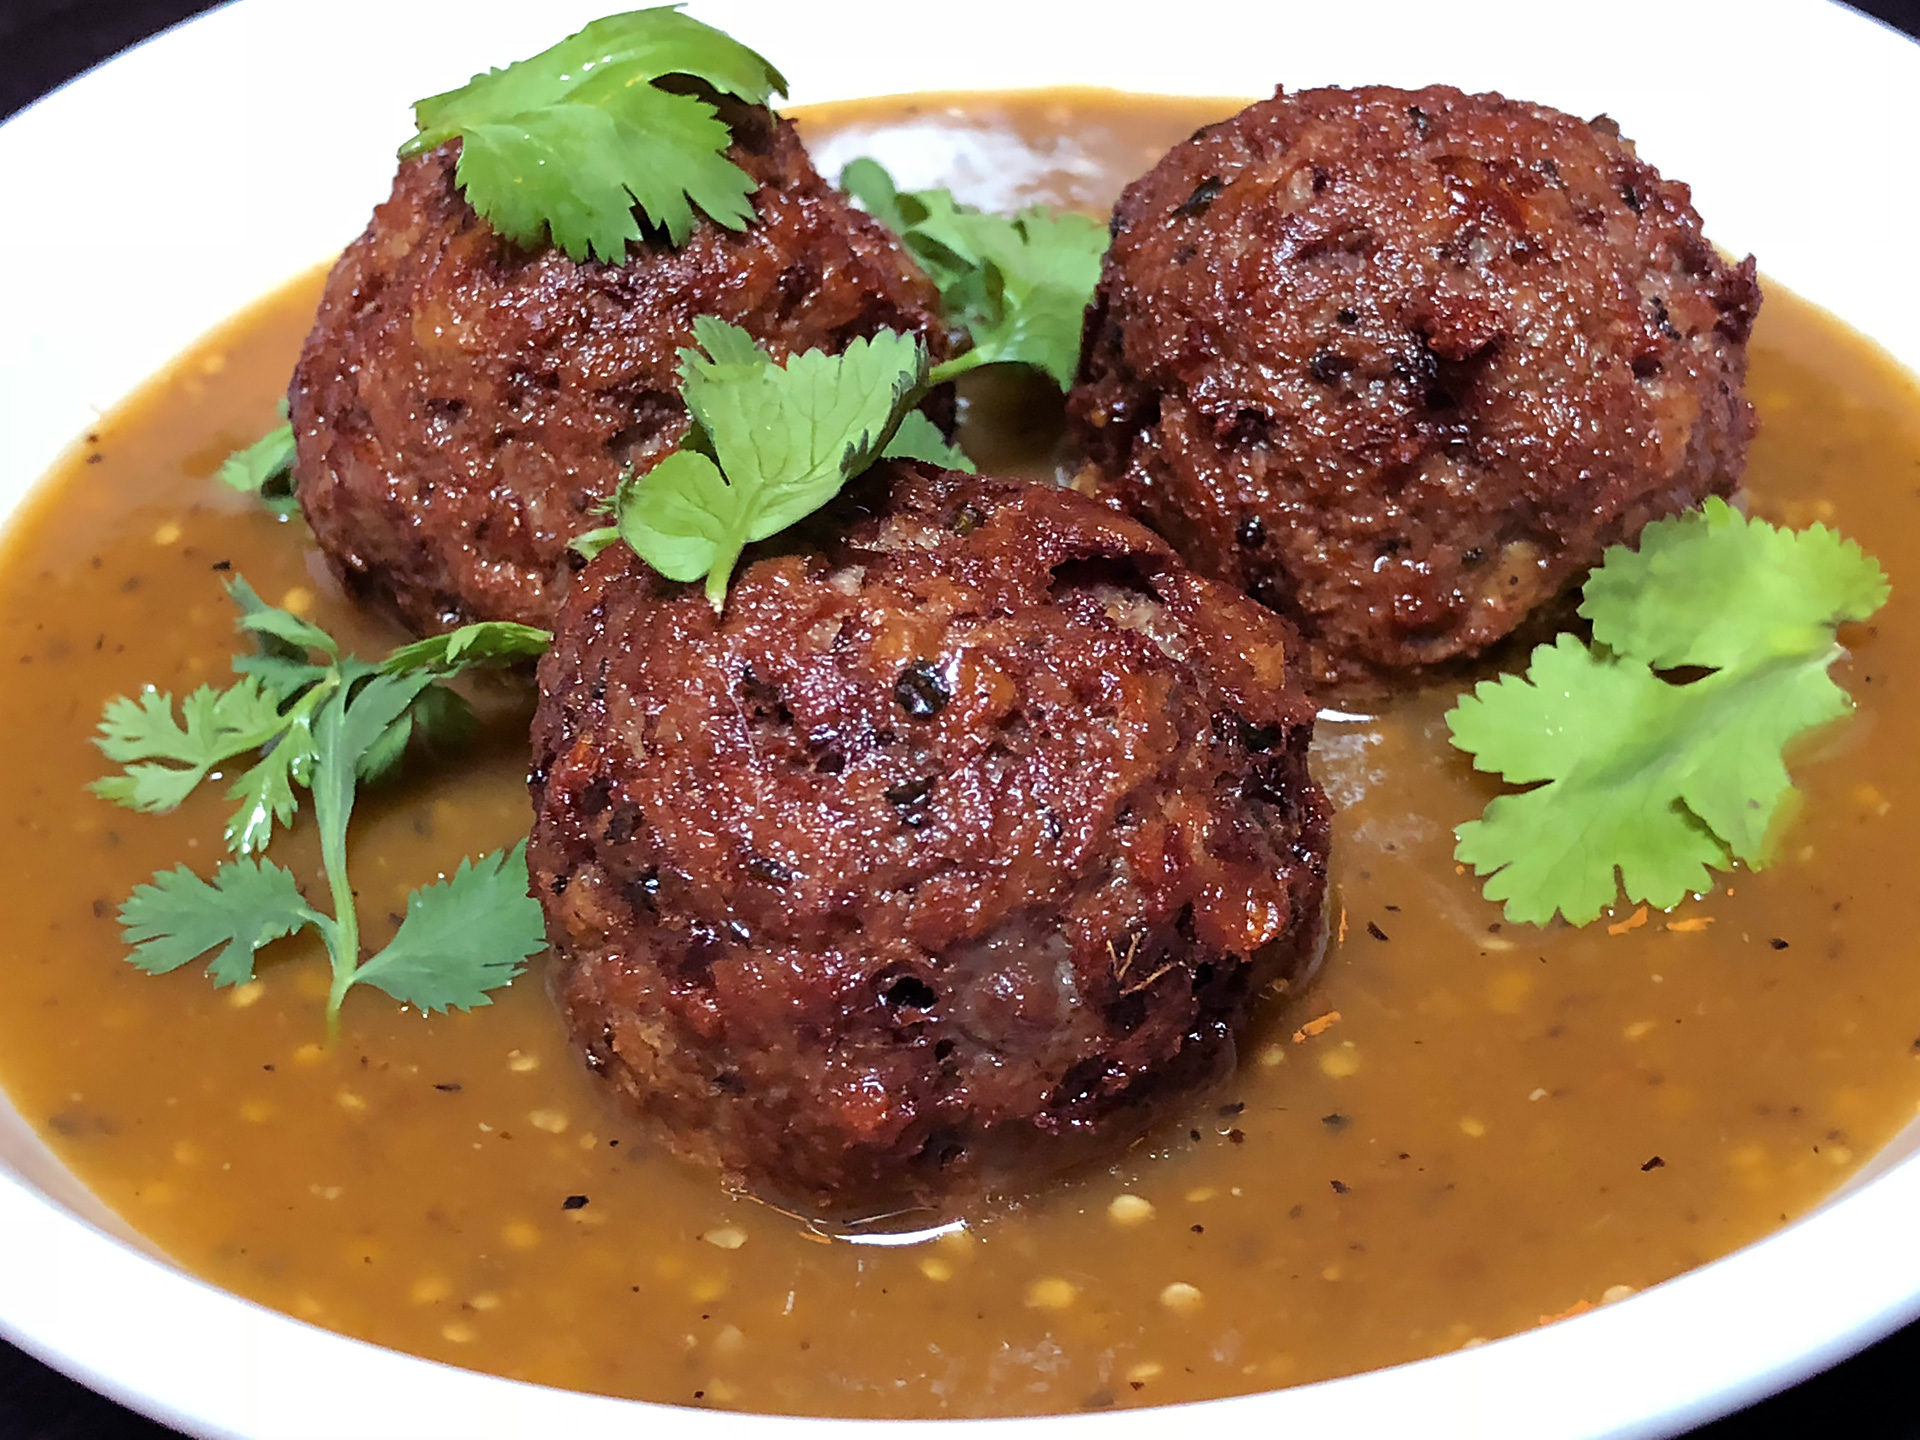 Meat-free Impossible meatball